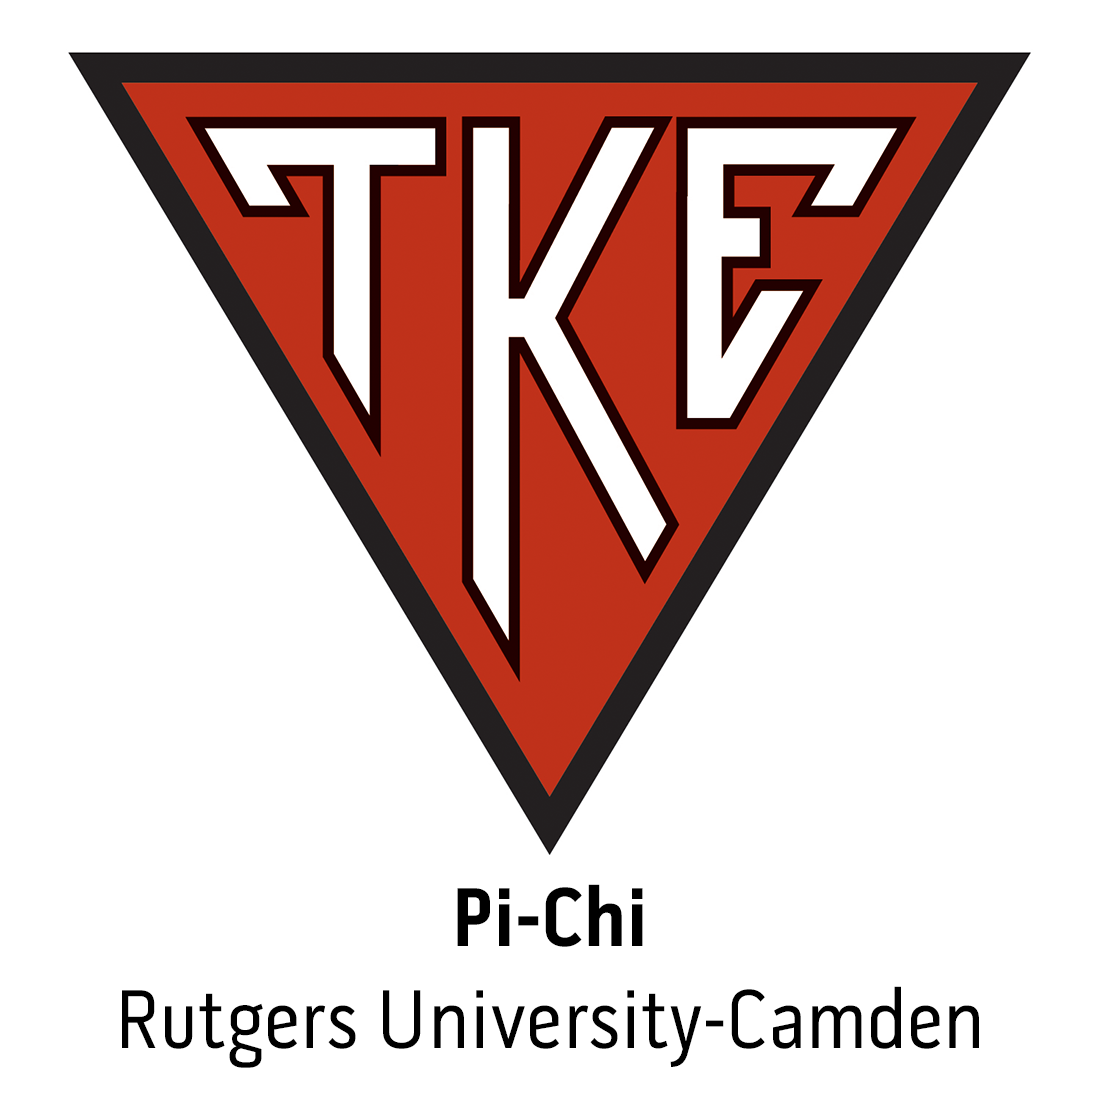 Pi-Chi Chapter at Rutgers University-Camden